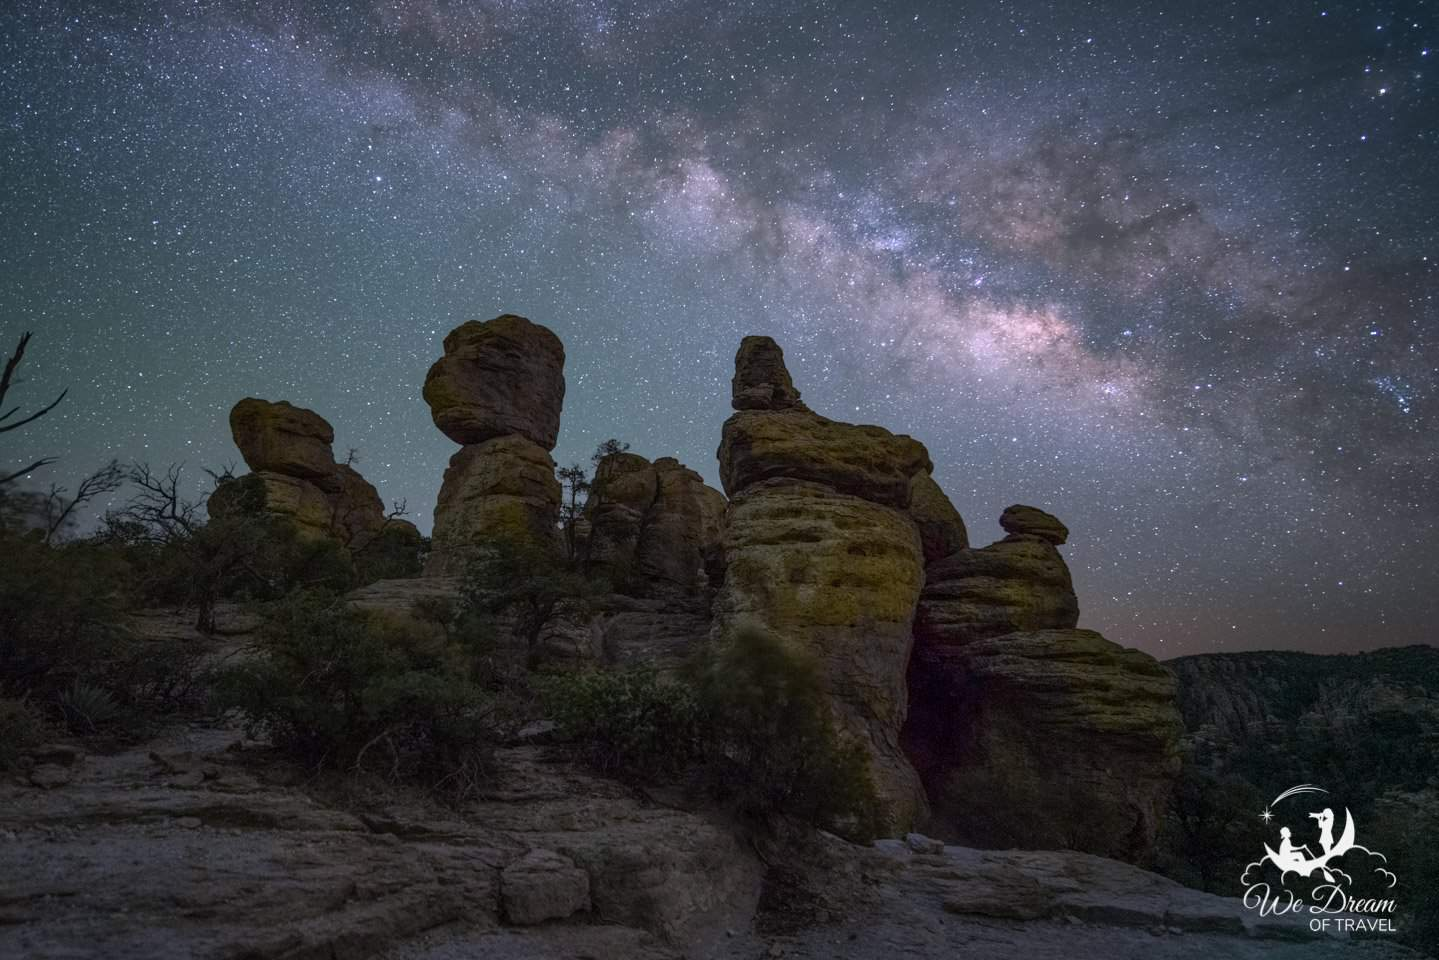 The milky way over rock formations at Chiricahua National Monument, an International Dark Sky Park.